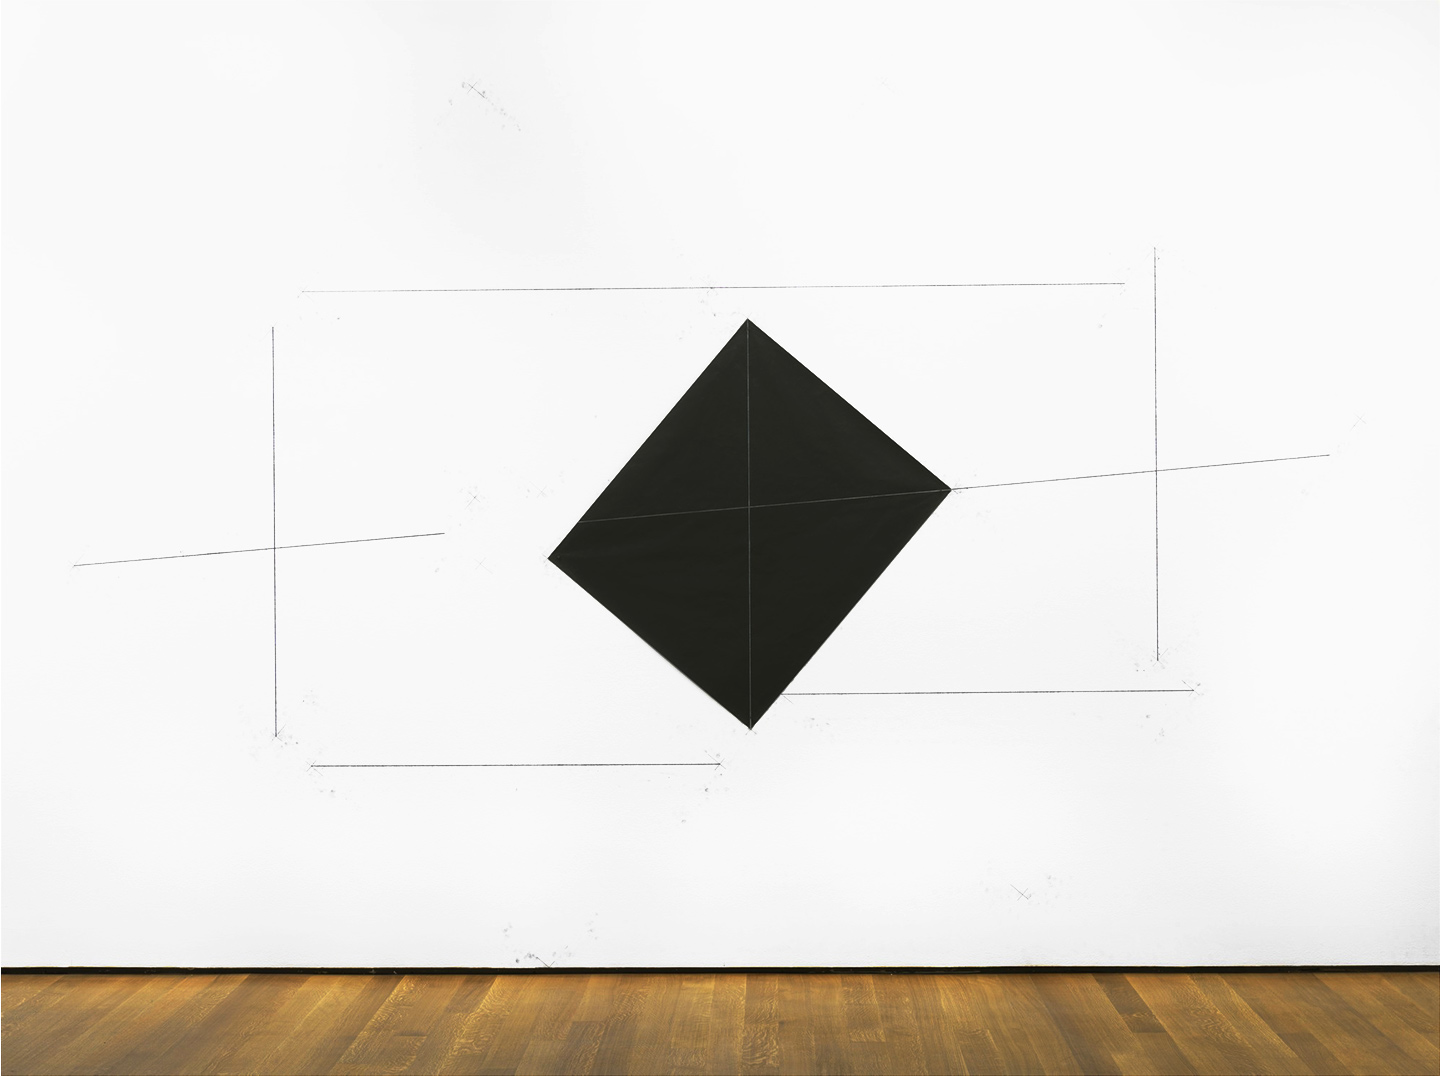 Dorothea Rockburne,  Drawing Which Makes Itself: Nesting , 1972, carbon paper and pencil on wall, 116 x 168 in. © Dorothea Rockburne / Artists Rights Society (ARS), NY. Photograph: The Museum of Modern Art. Fair Use Disclaimer